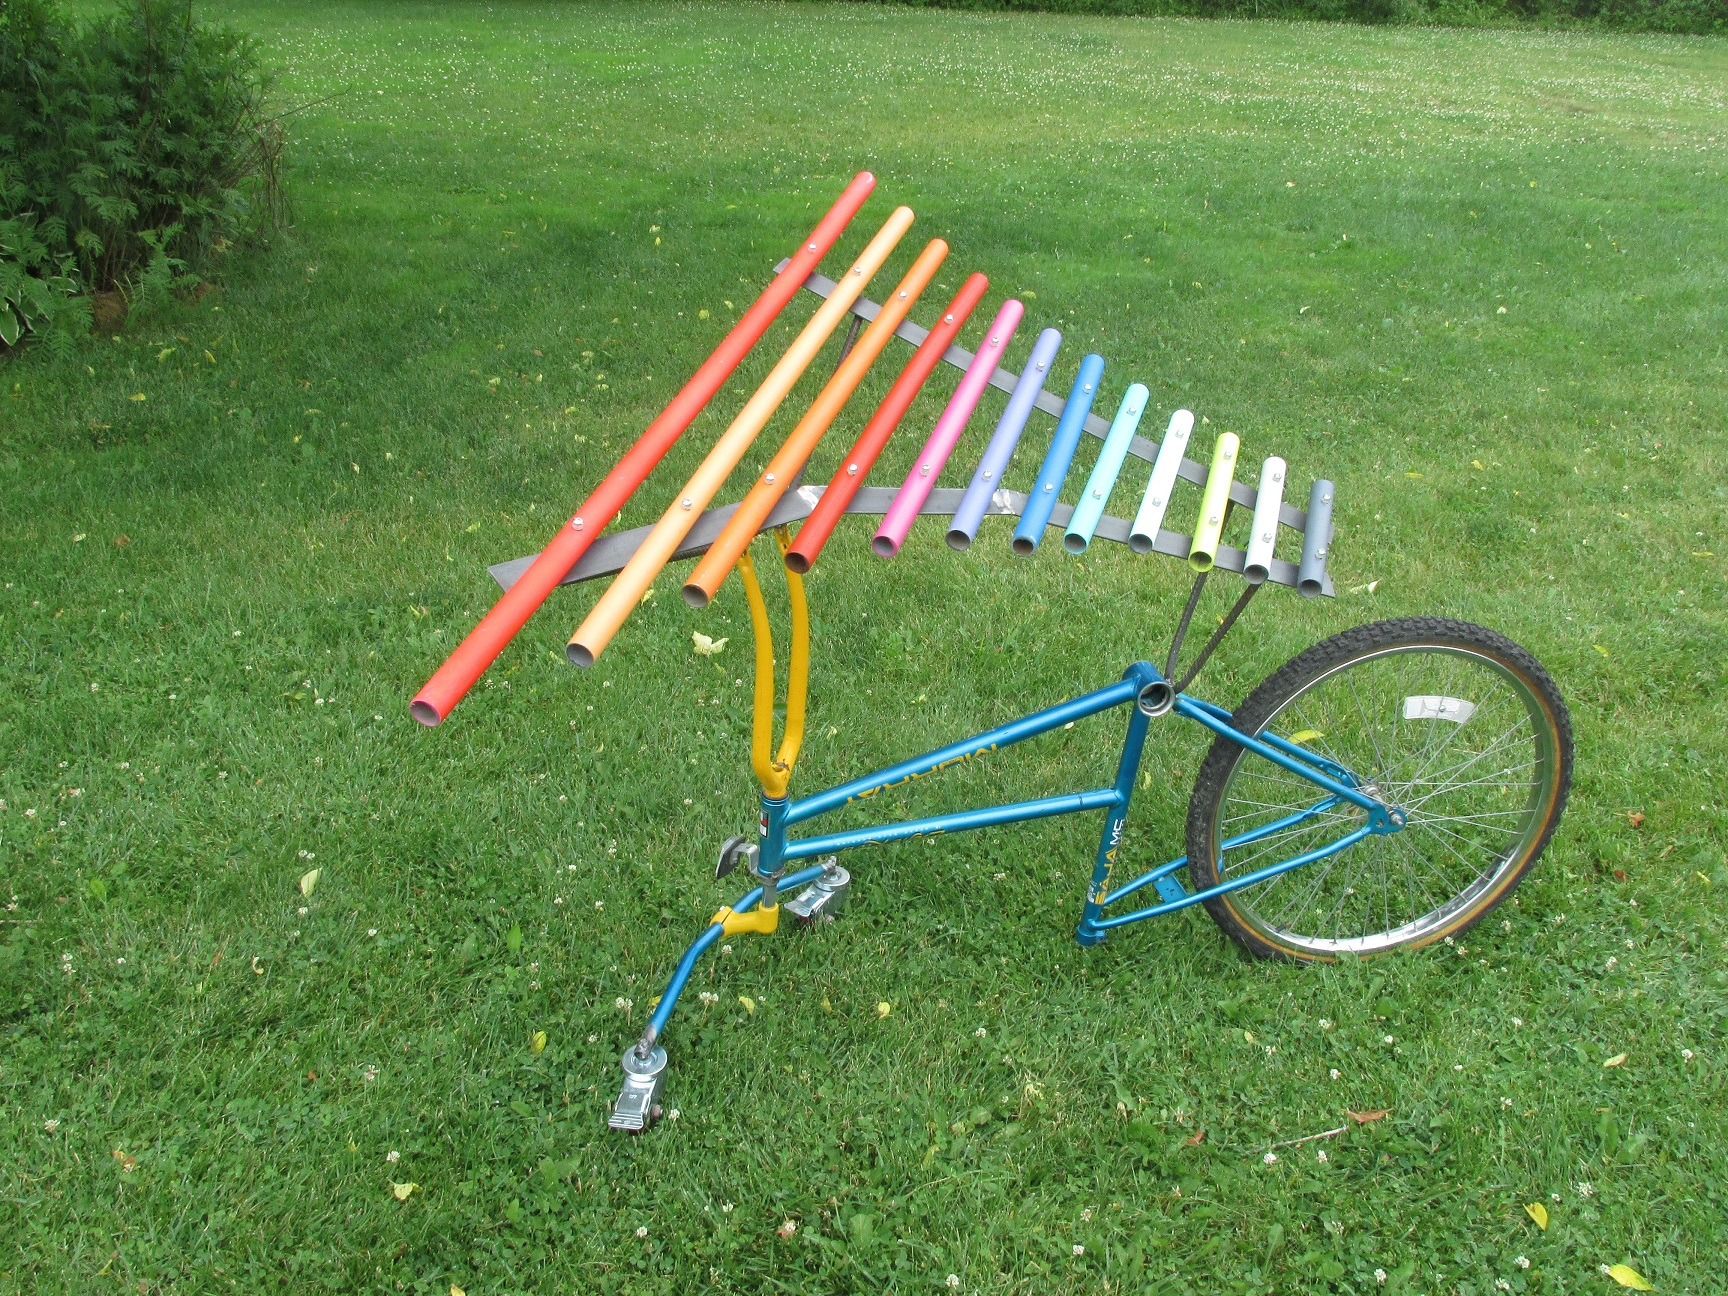 xylophone mounted on a bicycle